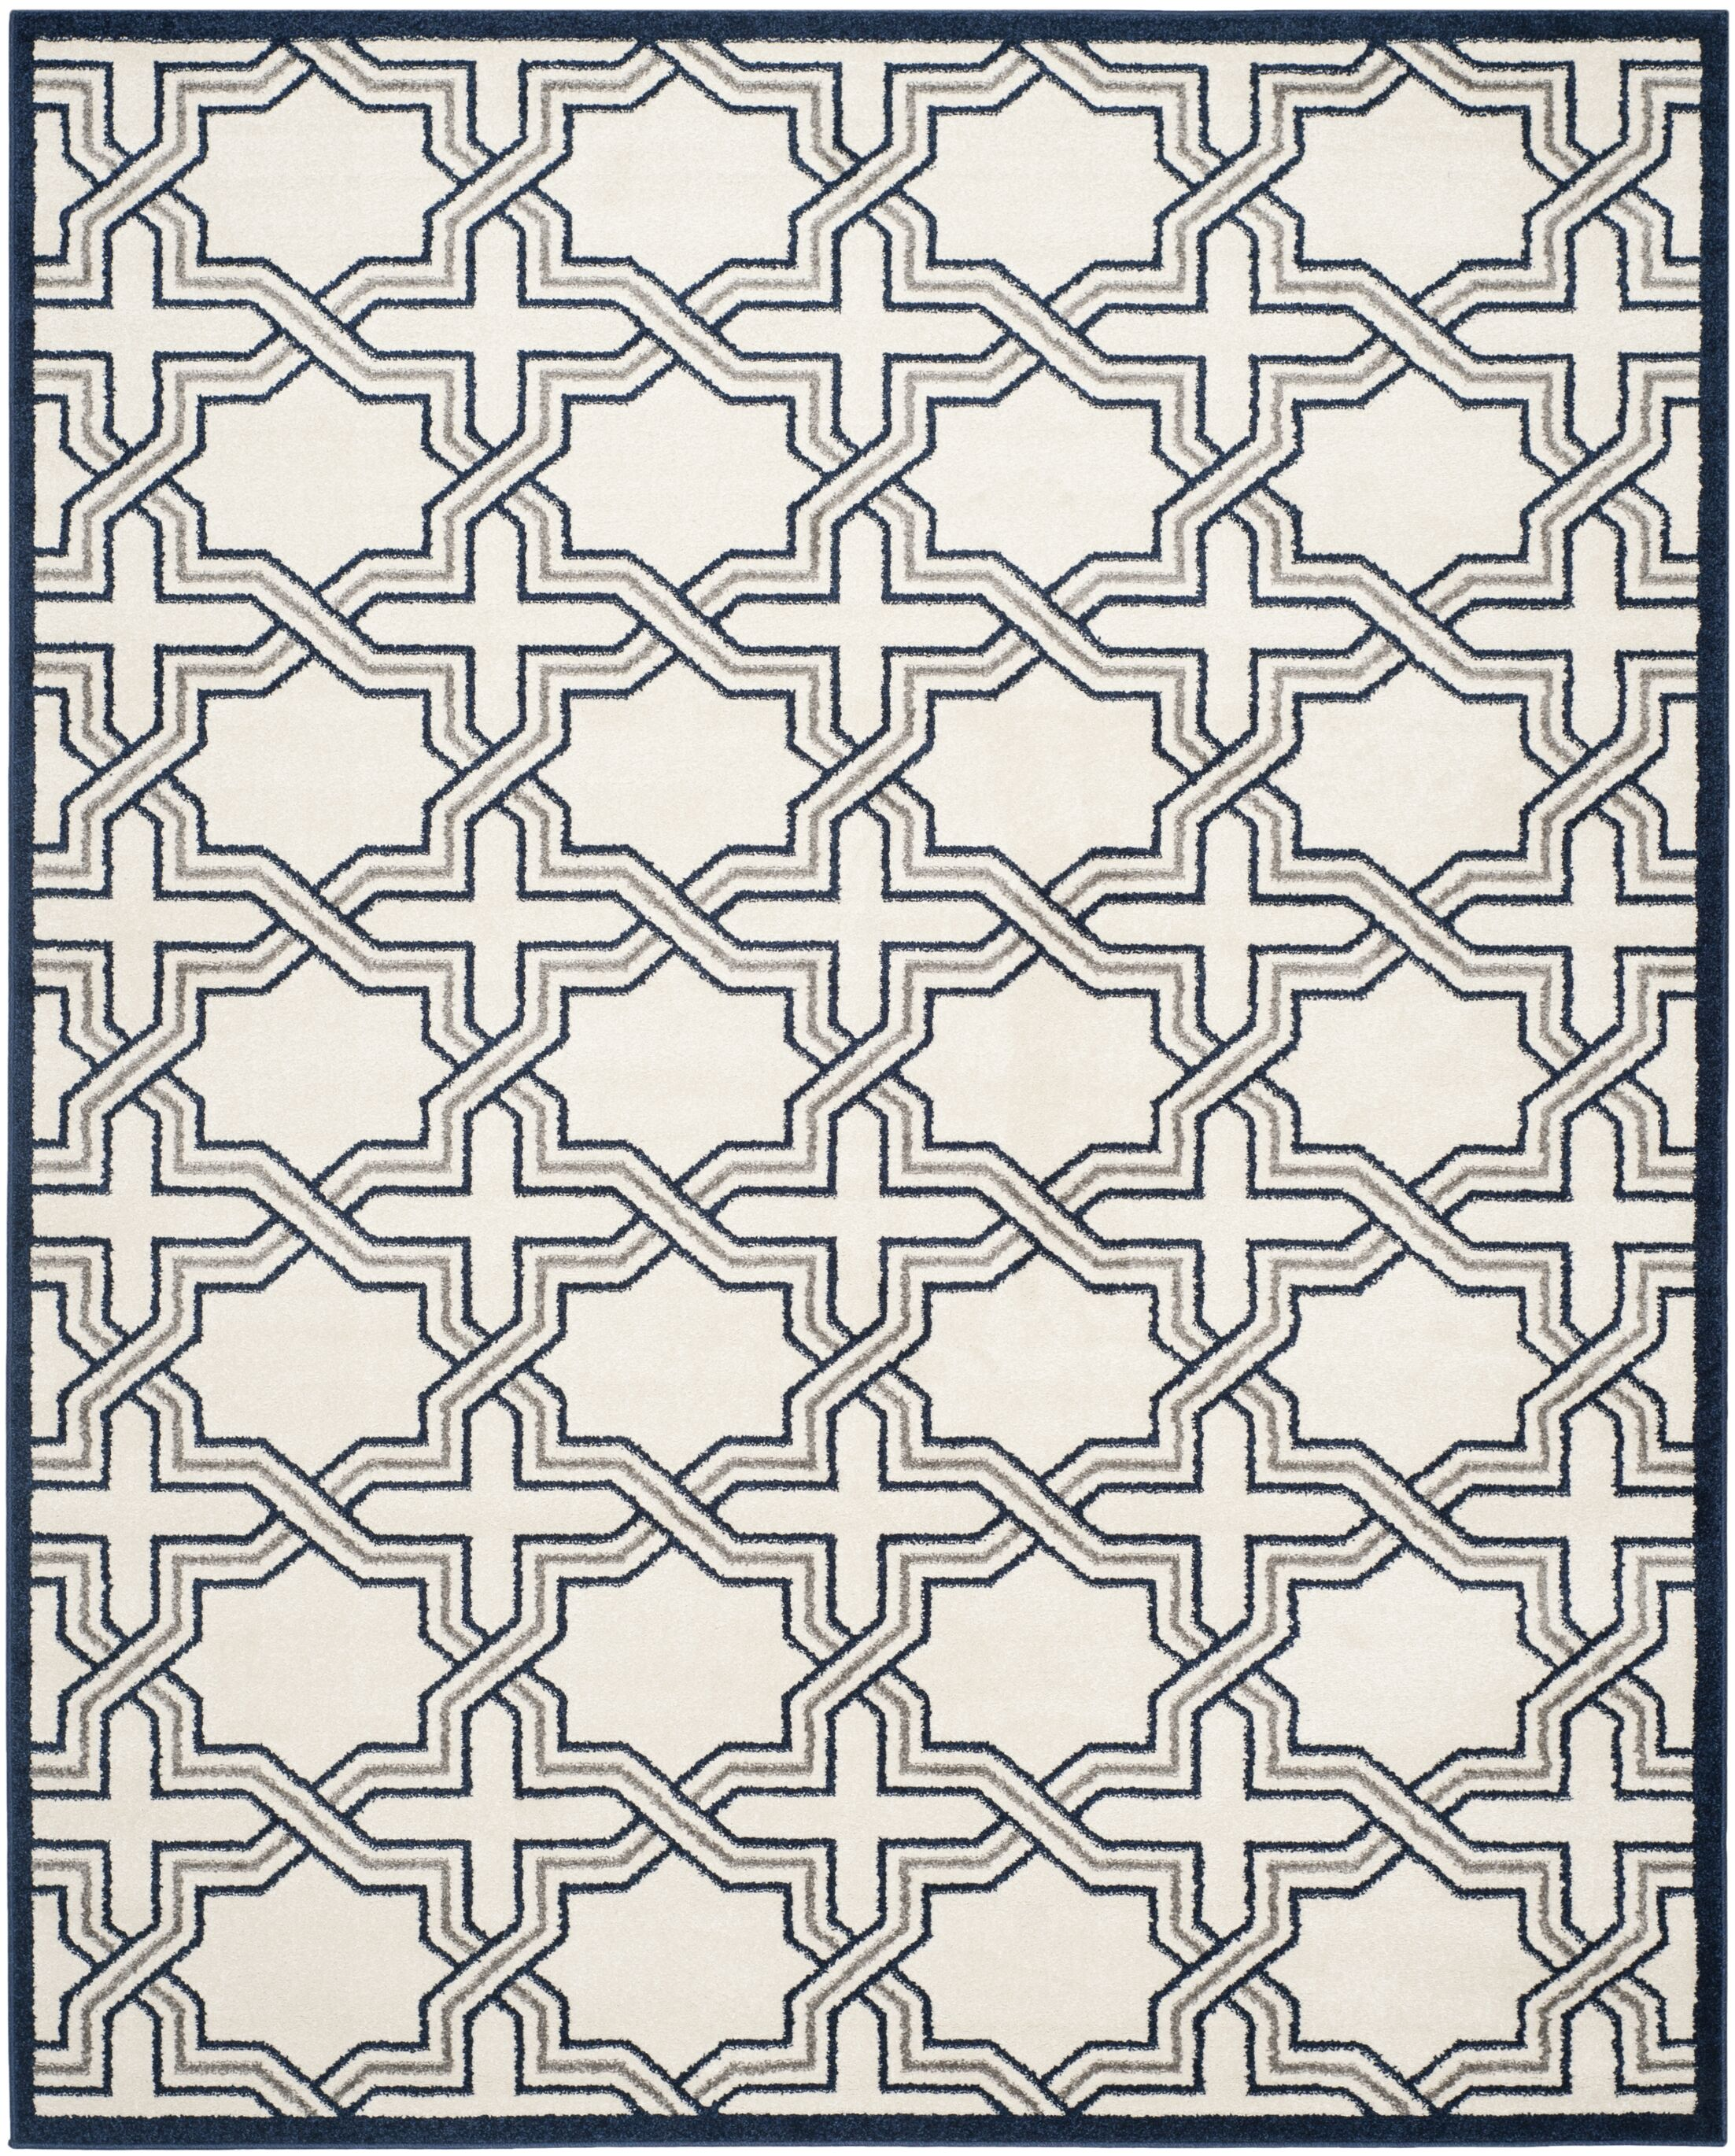 McArthur Ivory/Navy Indoor/Outdoor Area Rug Rug Size: Rectangle 9' x 12'